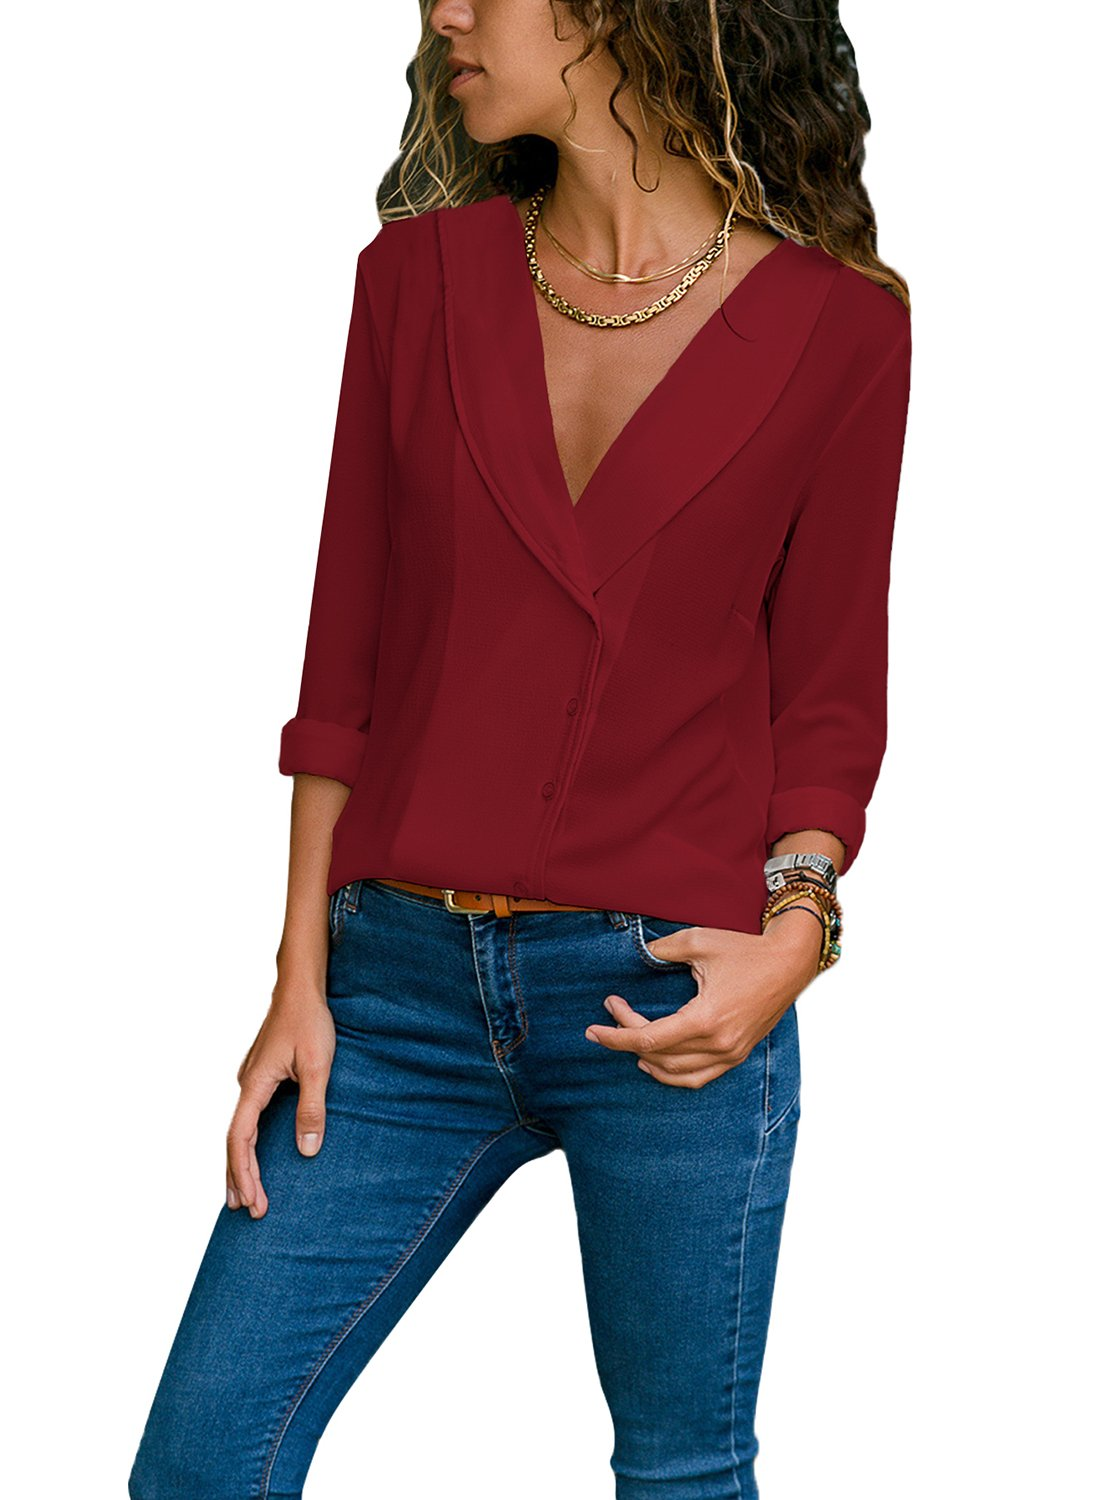 Diukia Women's Long Cuffed Sleeve V Neck Botton Front Solid Chiffon Causal Tops T-Shirt Blouses